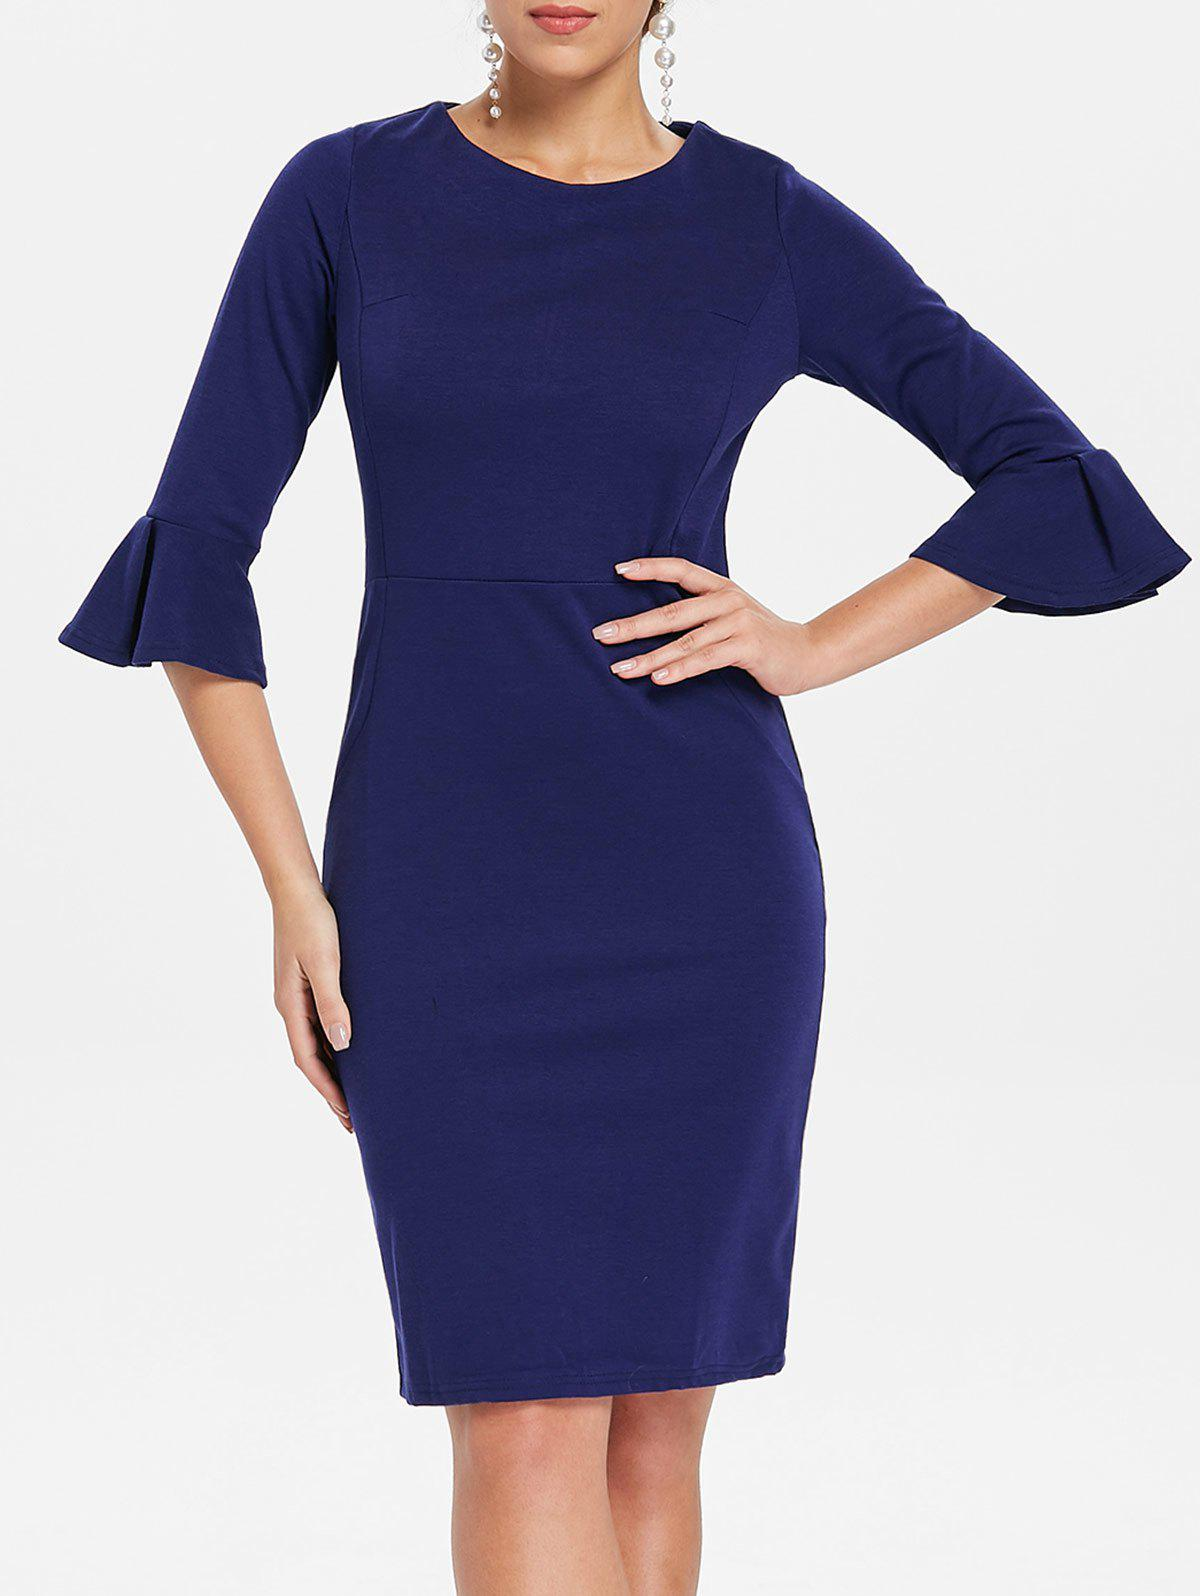 Flare Sleeve Knee Length Work Dress - CADETBLUE XL